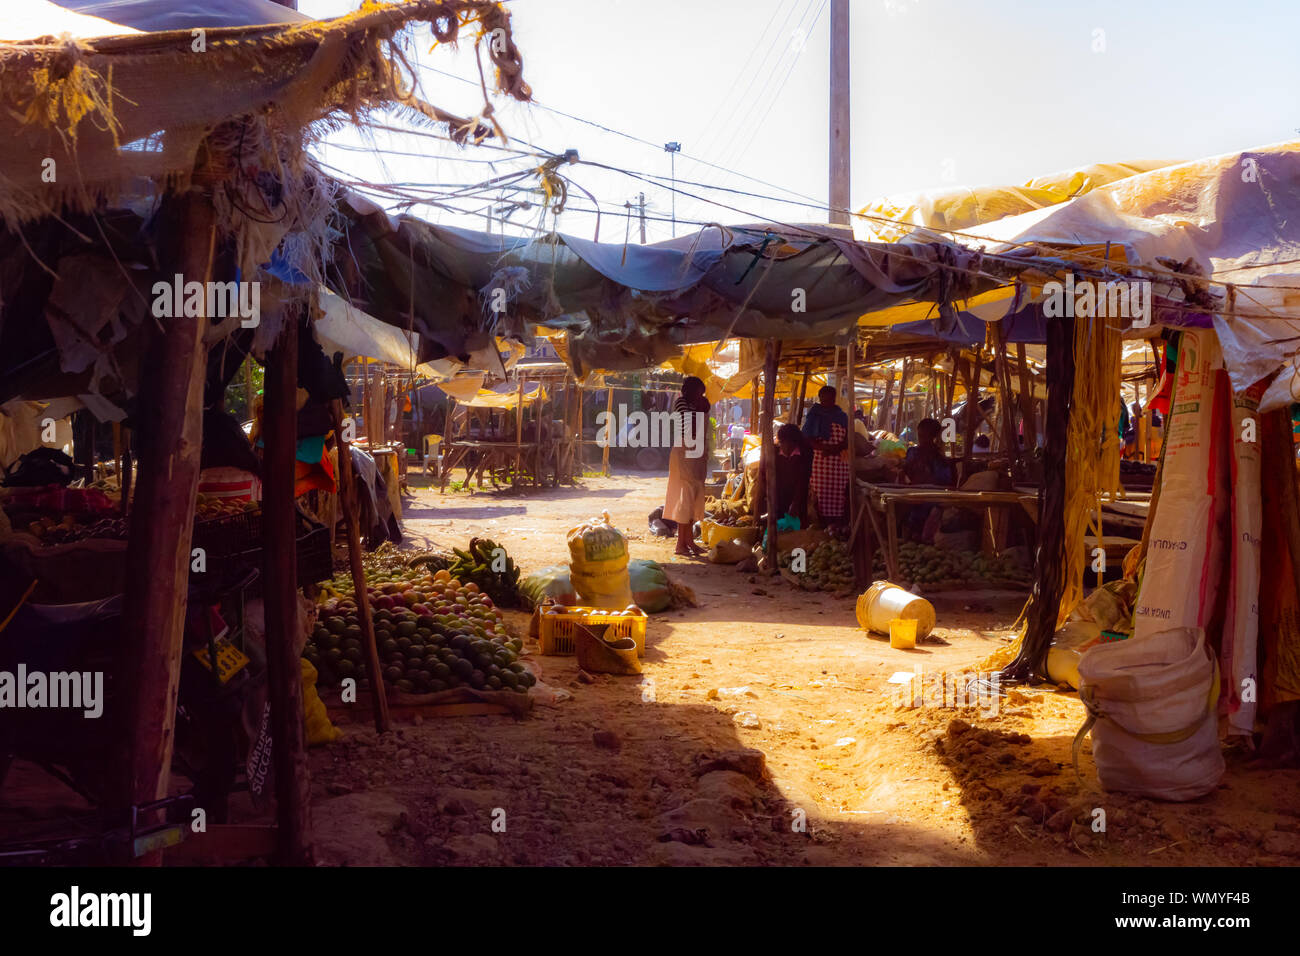 Nanyuki, Laikipia county, Kenya - January 3rd, 2017: Photograph of quiet Kenyan fruit and vegetable market during a typical hot dry day. Stock Photo